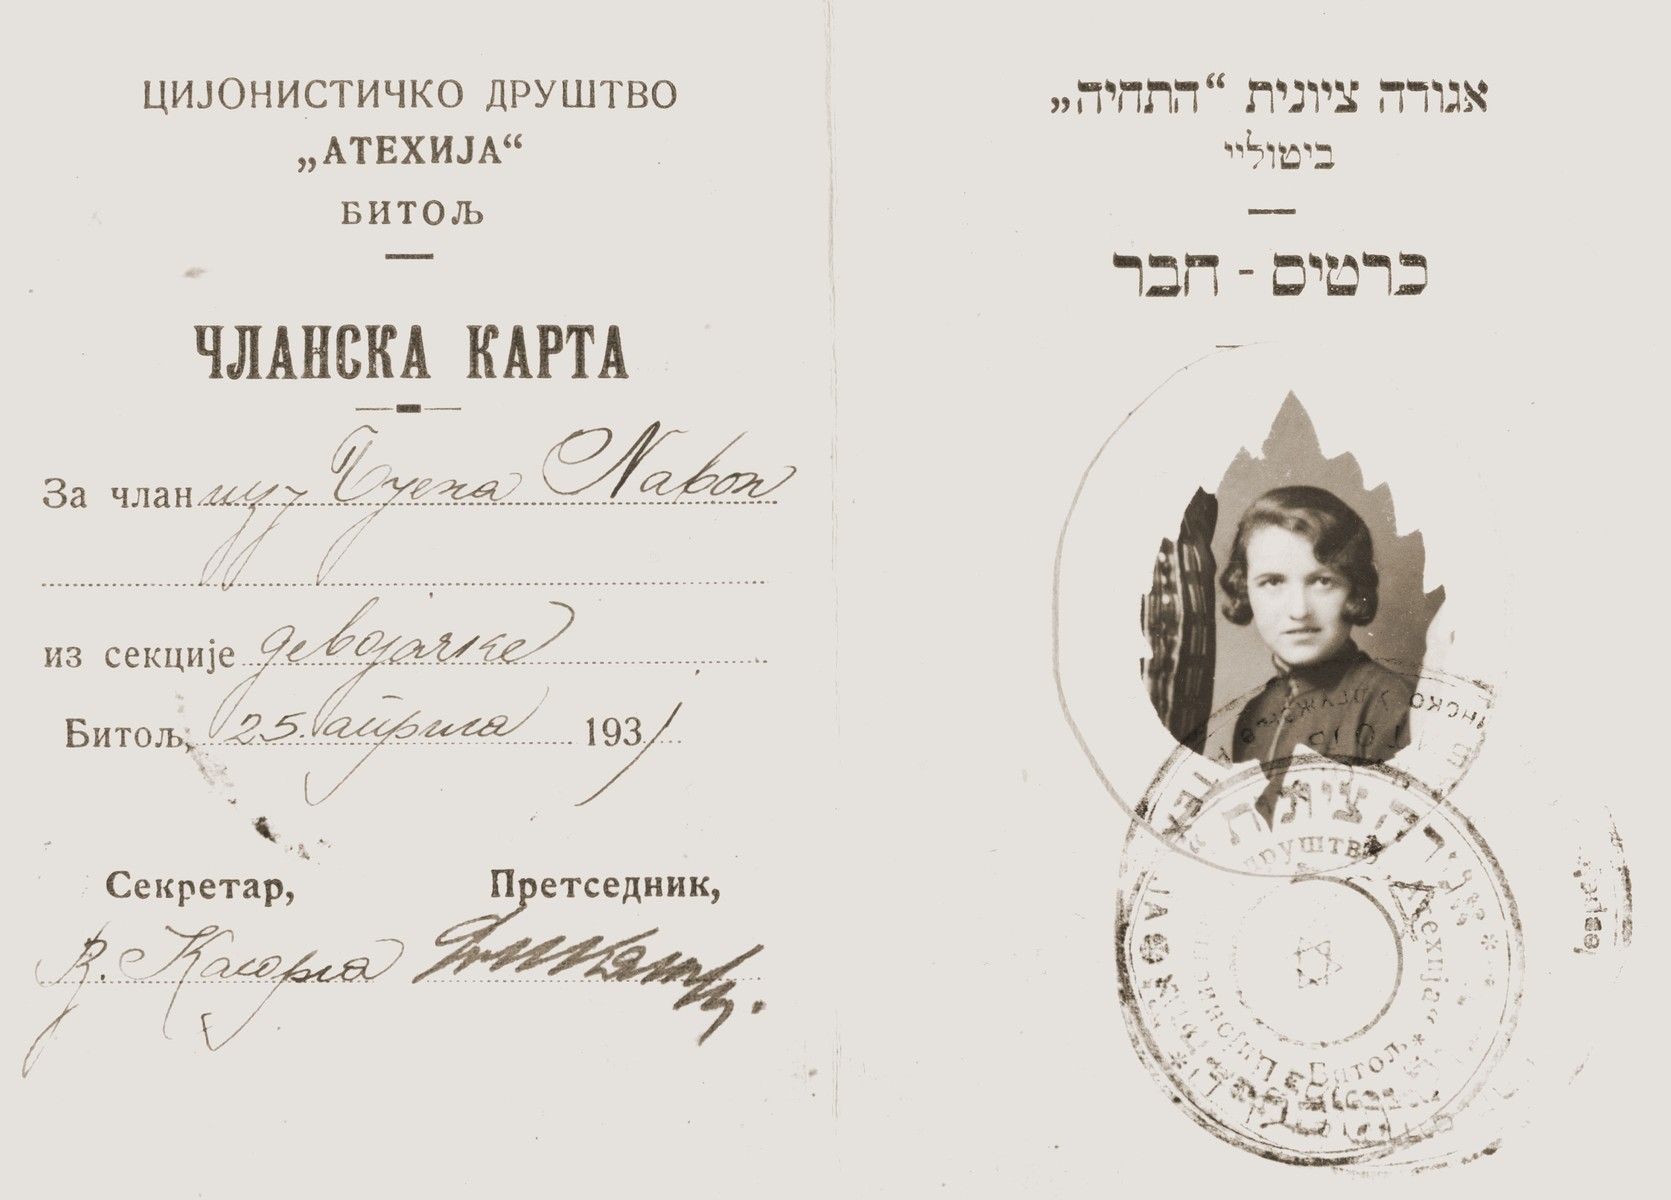 Membership card in the Bitola, Macedonia chapter of the Hatichiya Zionist youth movement.